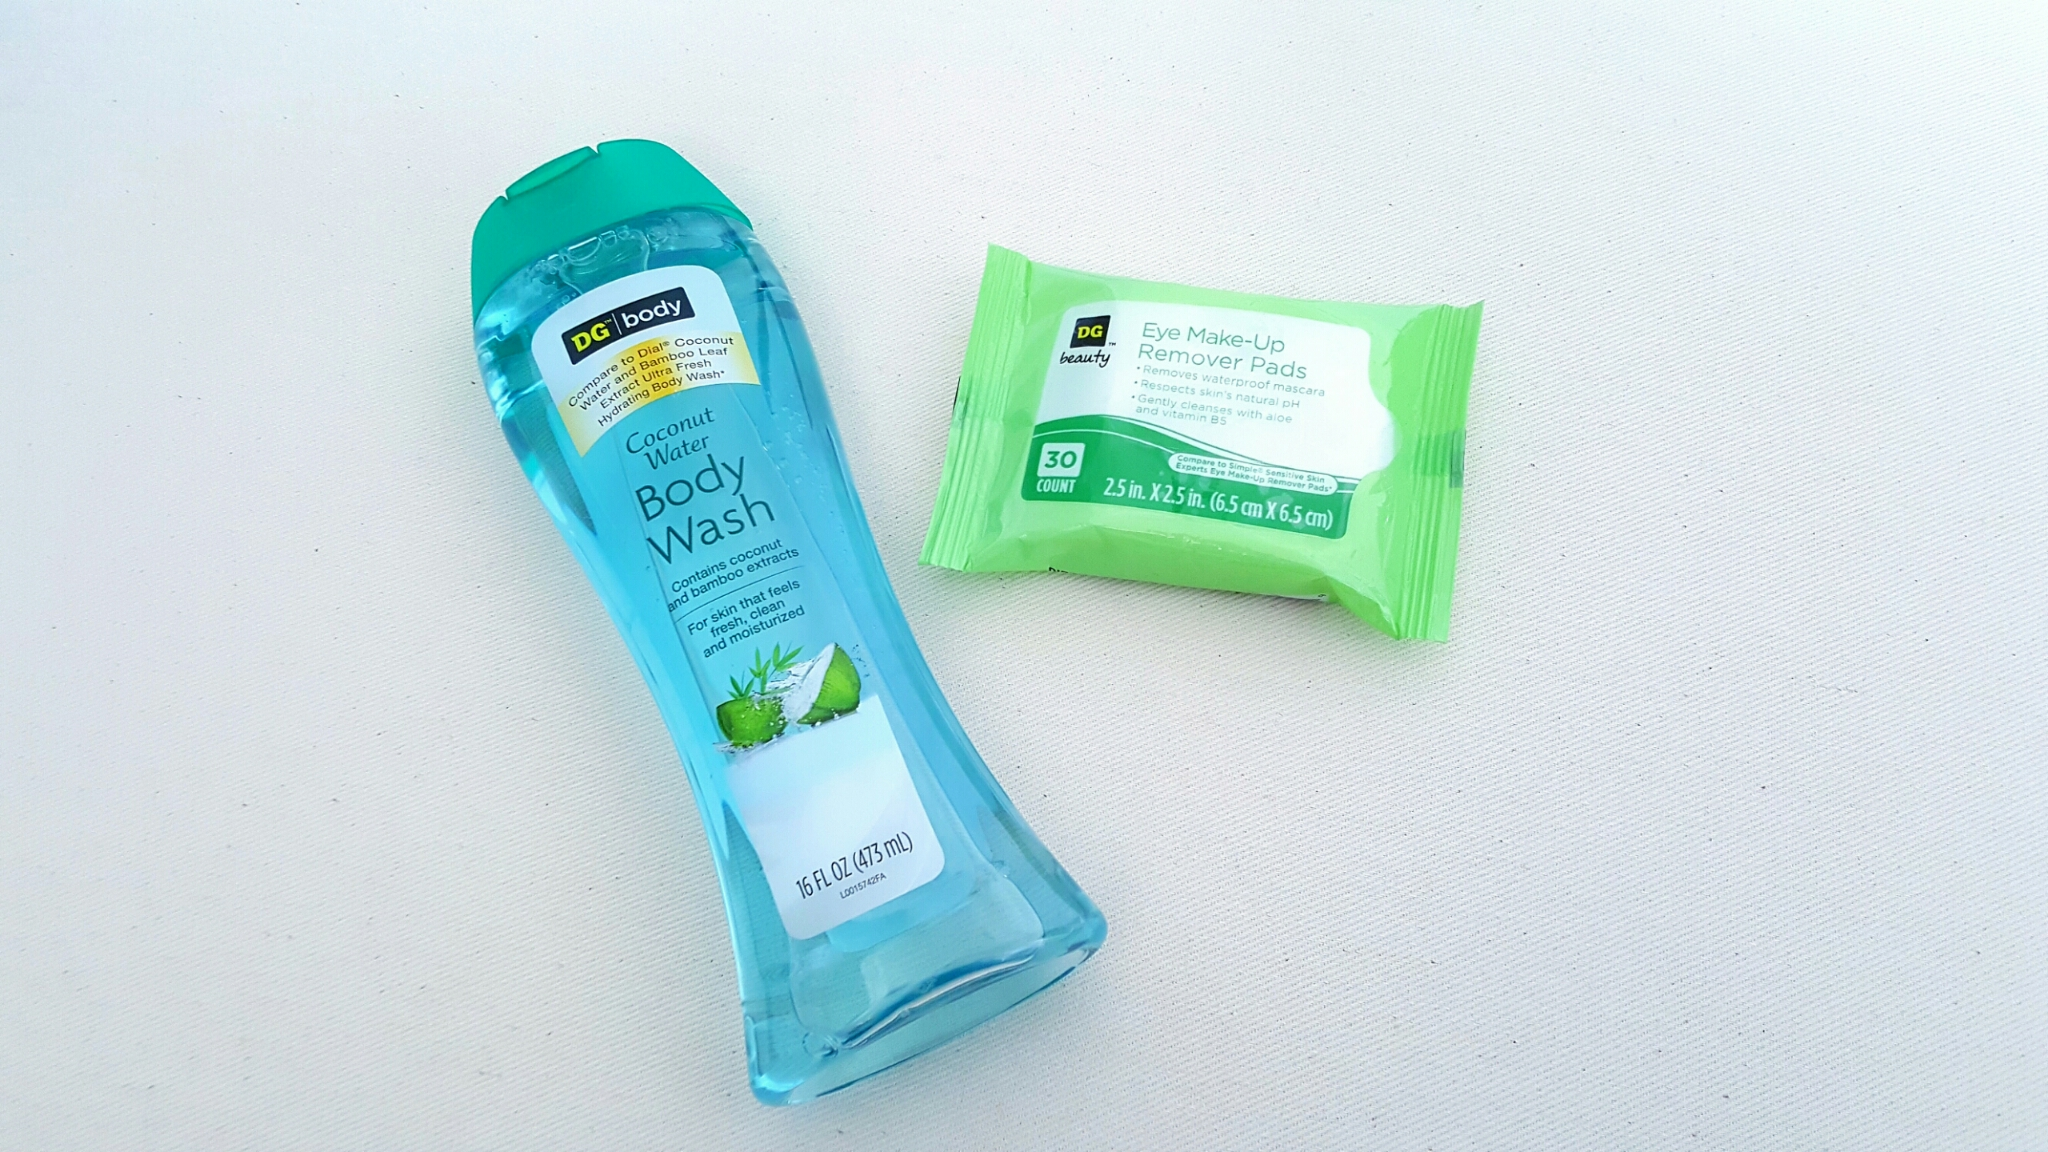 Simple eye makeup remover wipes